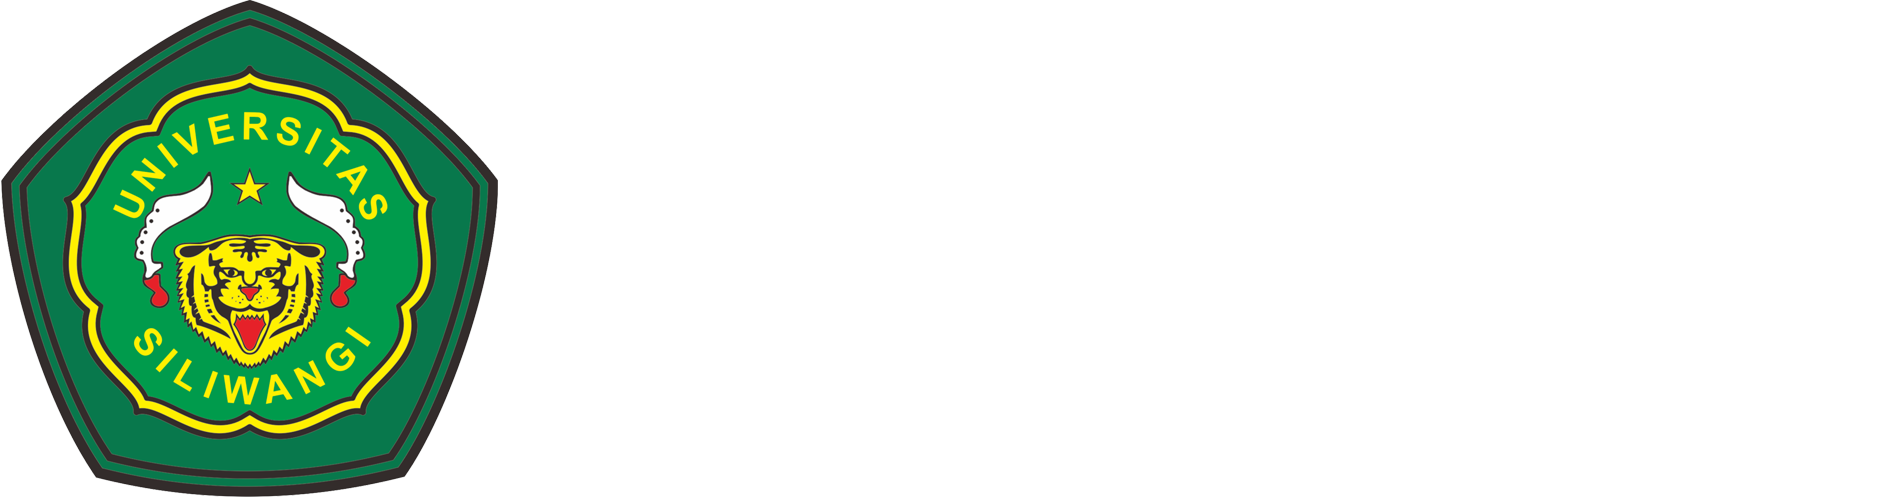 Website Resmi Universitas Siliwangi